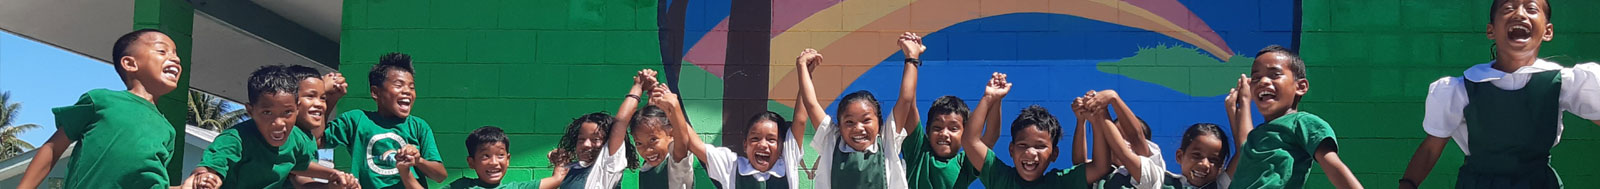 children holding hands and jumping in the air